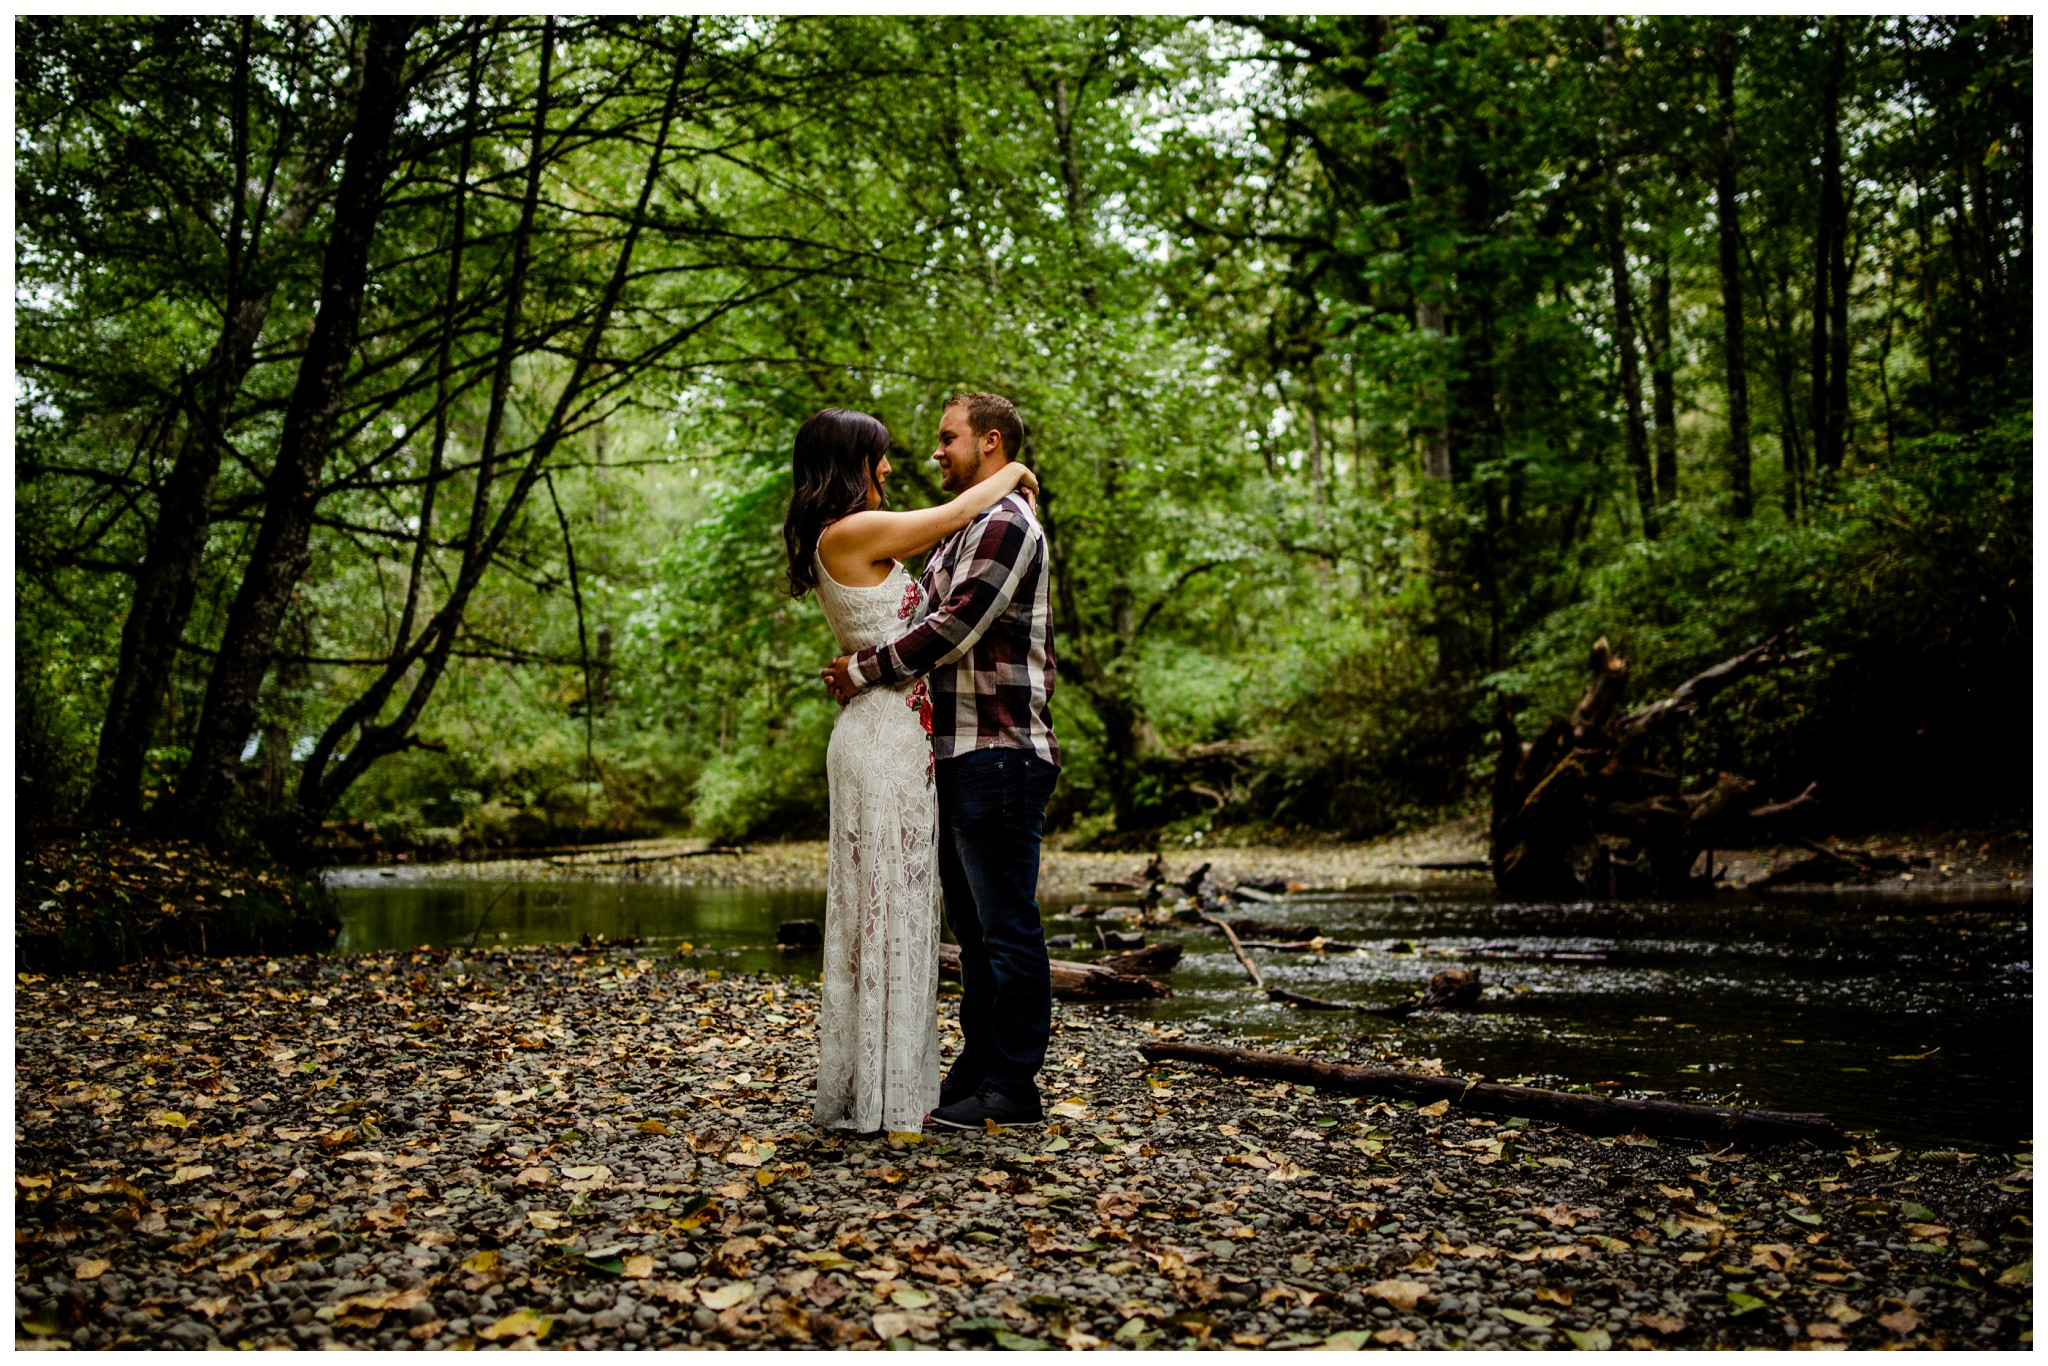 Williams Park Aldergrove Engagement Photographer Moody Fall Couple River Water Romantic Pose Yellow Leaves White Dress Dark_0001.jpg